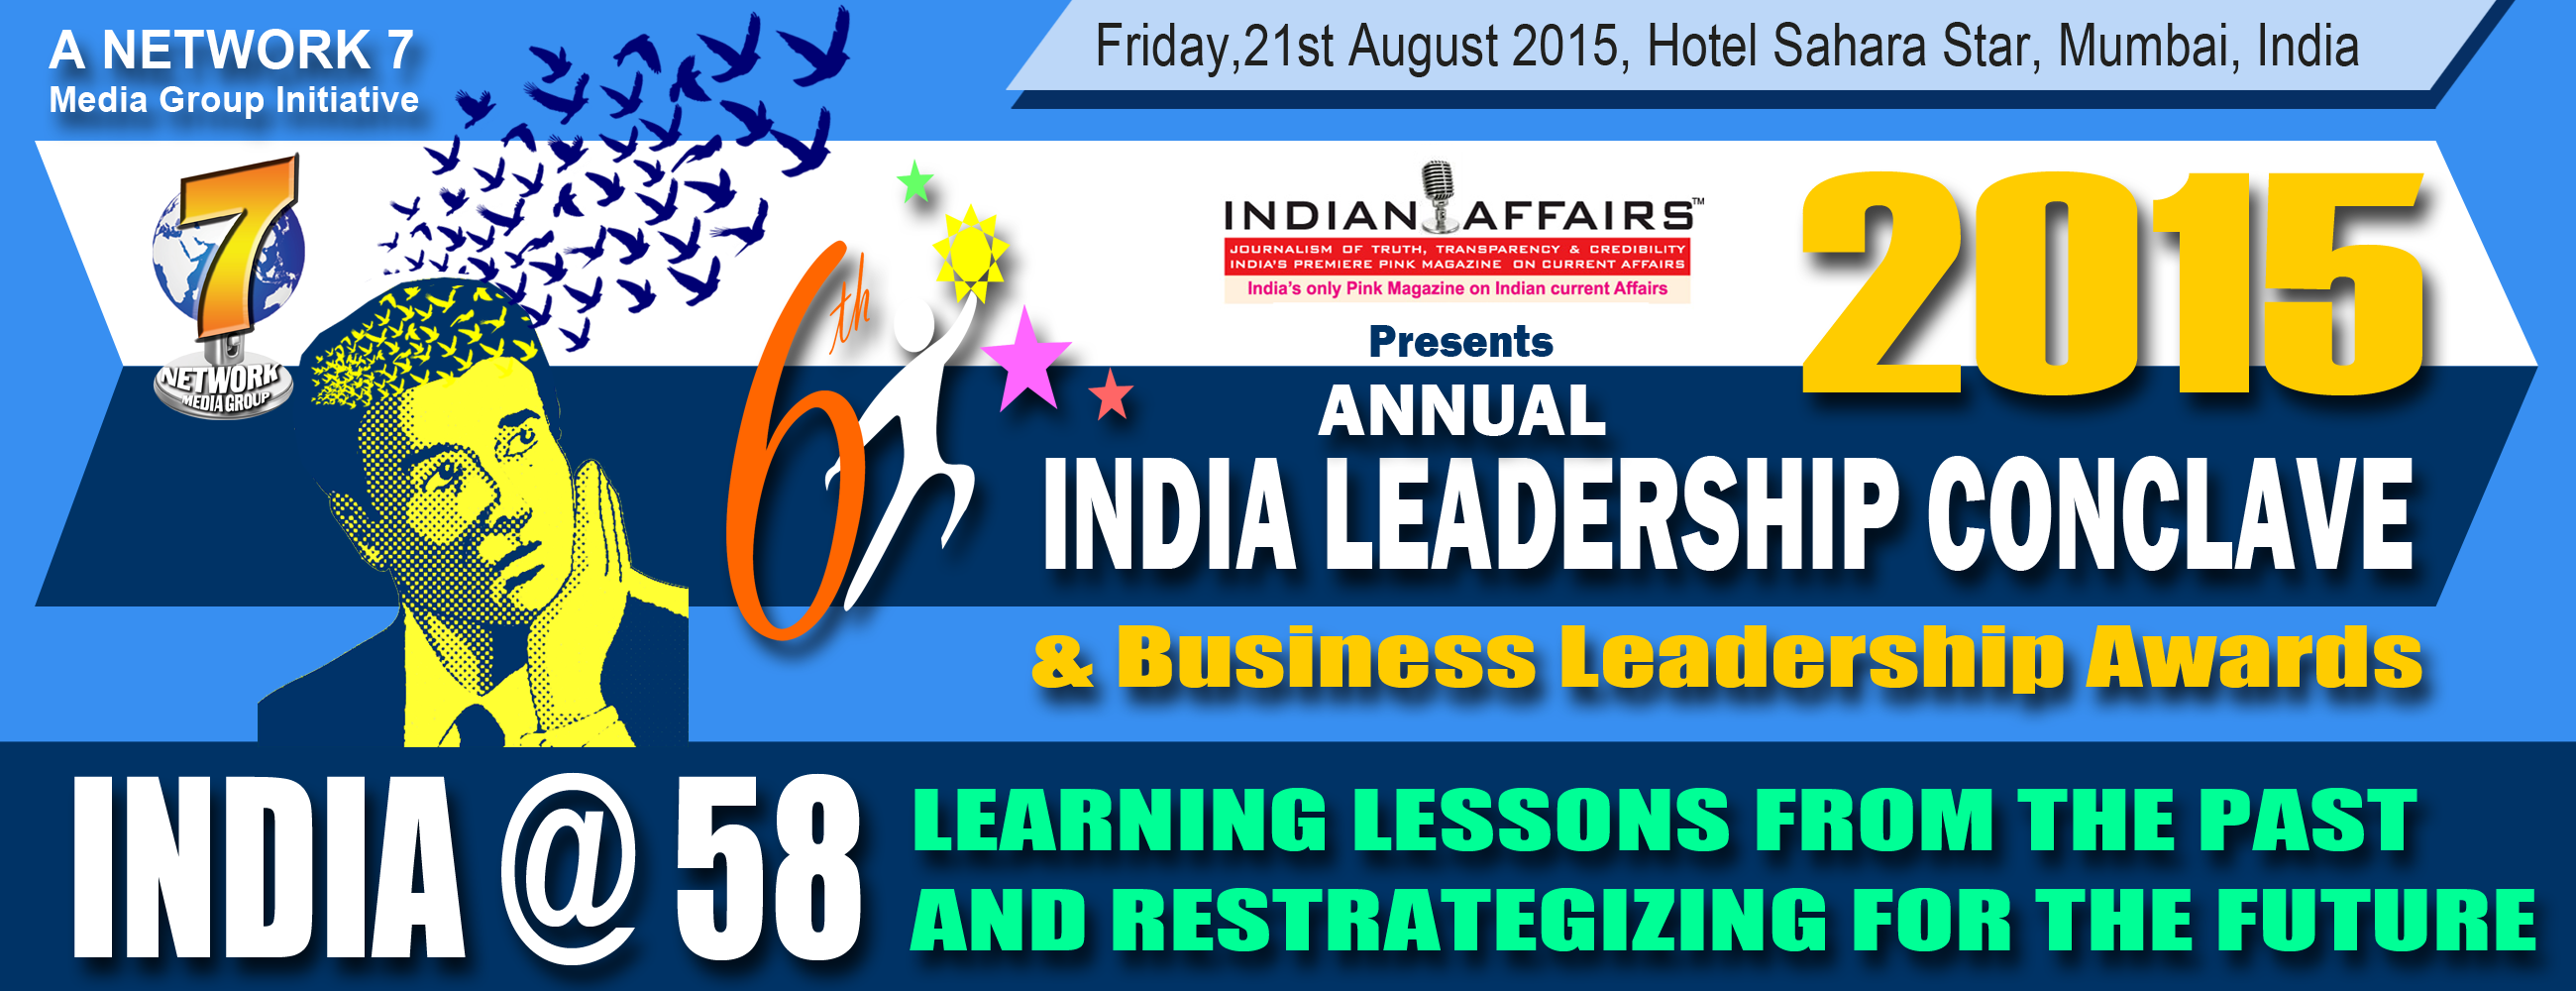 Book Online Tickets for 6th Annual India Leadership Conclave  In, Mumbai. India@58 is the theme at 6th Annual India Leadership Conclave & Indian Affairs Business Leadership Awards 2015